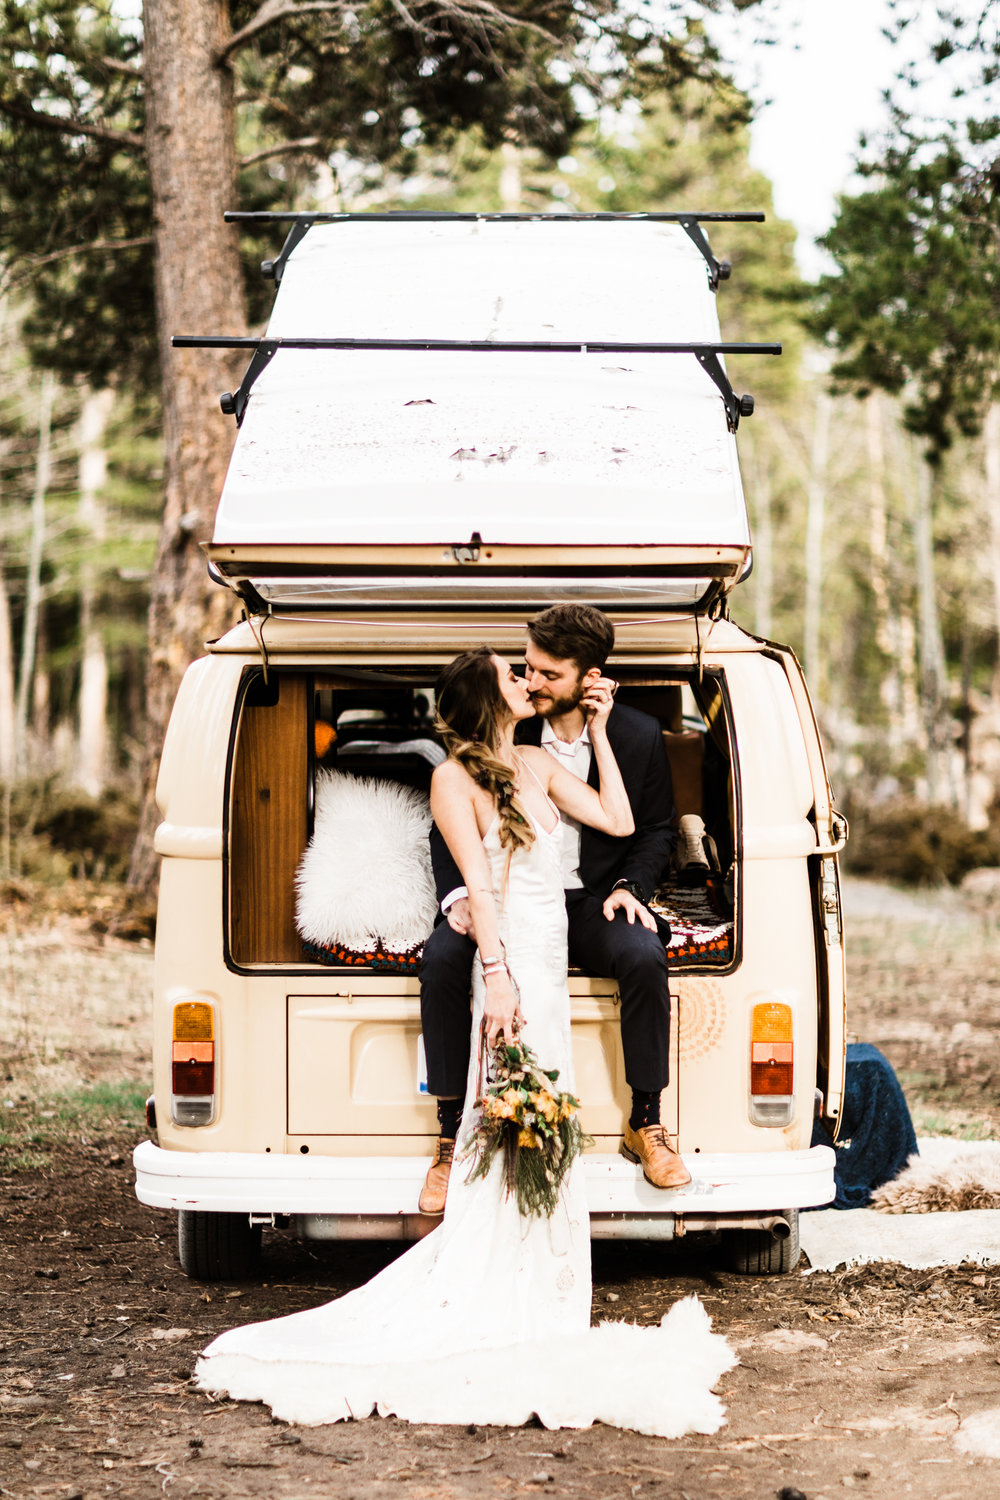 Sheena_Shahangian_Photography_Nederland_Colorado_Rocky_Mountains_Adventure_Elopemement_Camper_Vintage_Camper_Van_Michael_Rayne-1.jpg